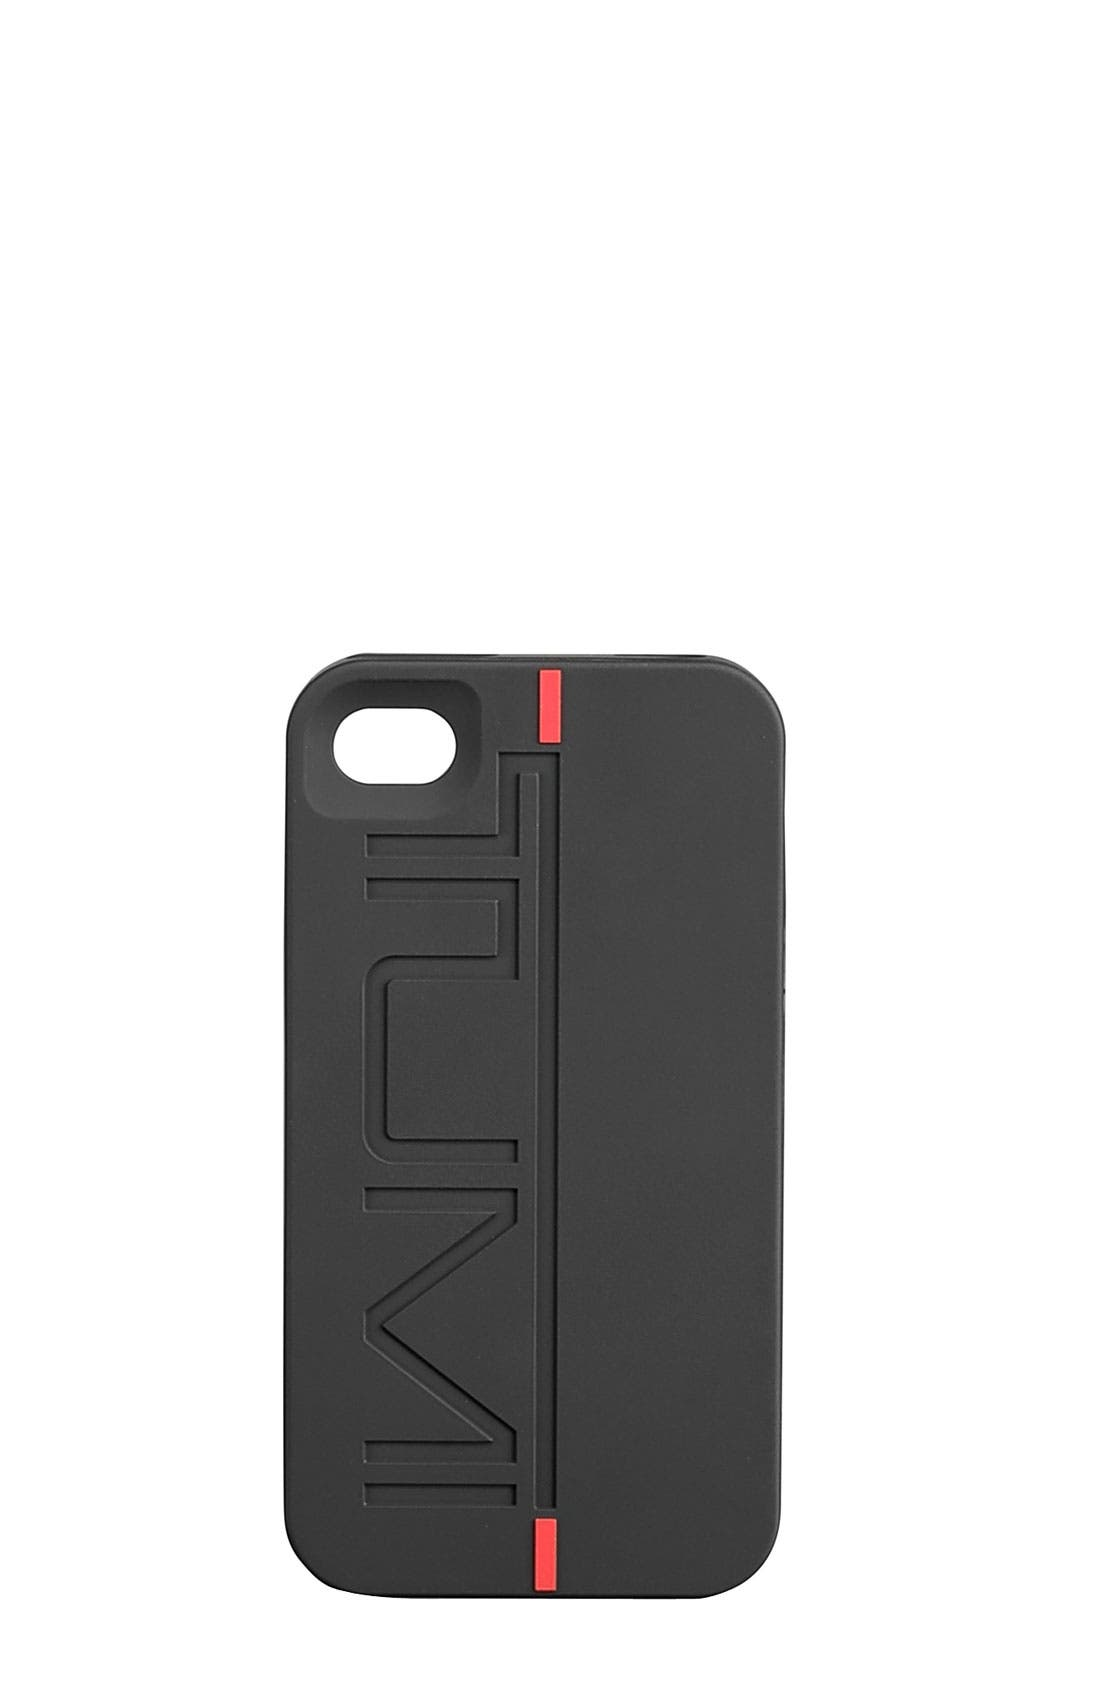 Main Image - Tumi Debossed iPhone 4 & 4S Cover